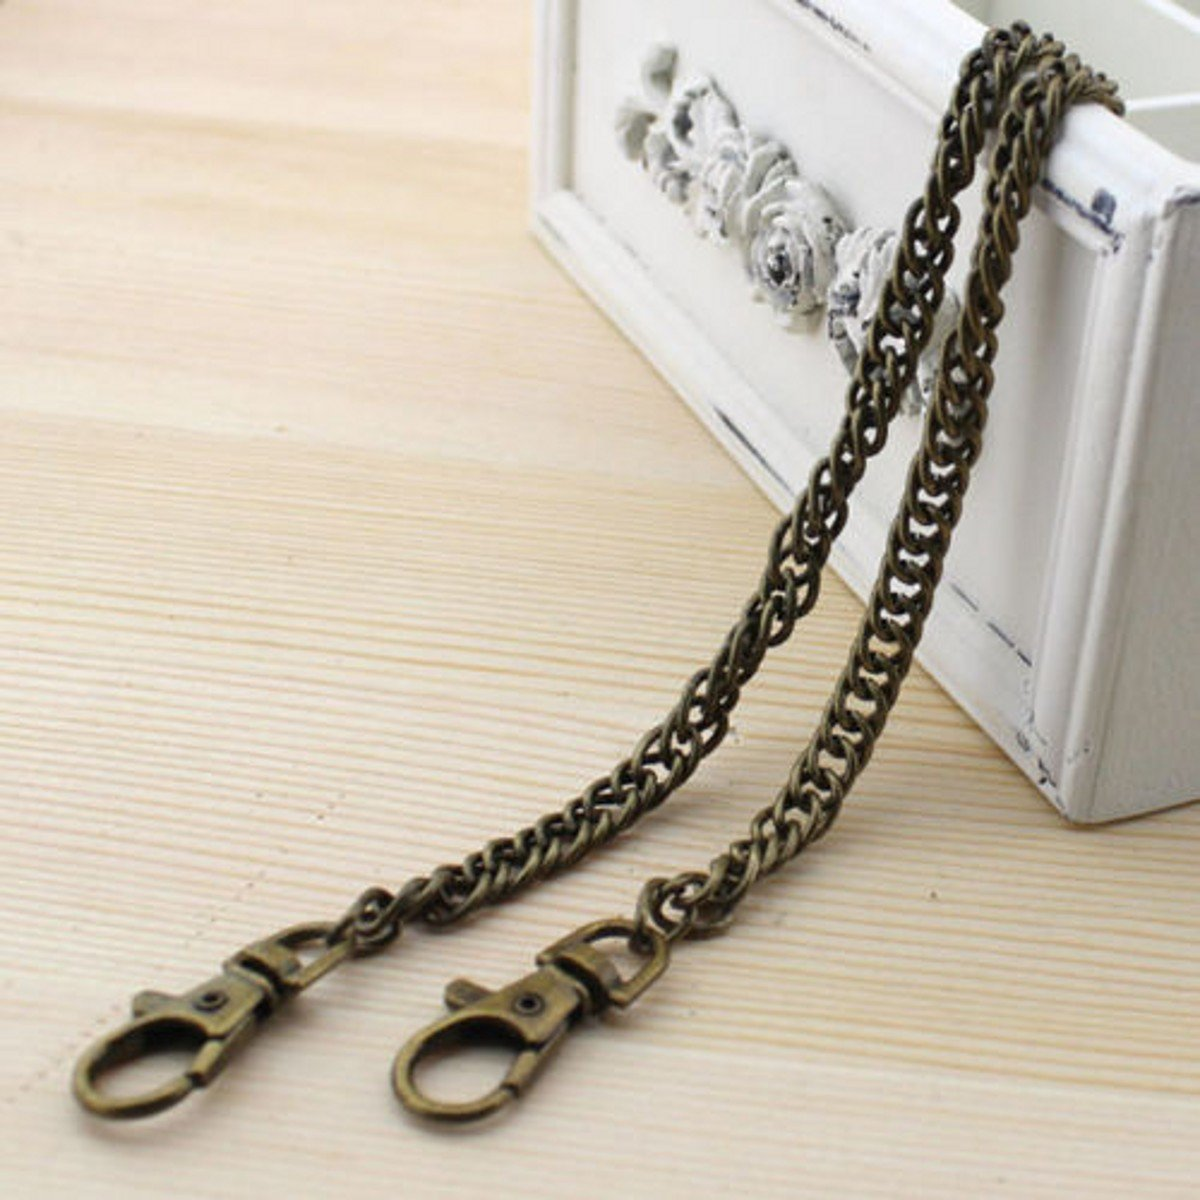 1 Piece Bag Metal Chain Strap Shoulder Strap Handbag Purse Handle 120CM Antique Brass